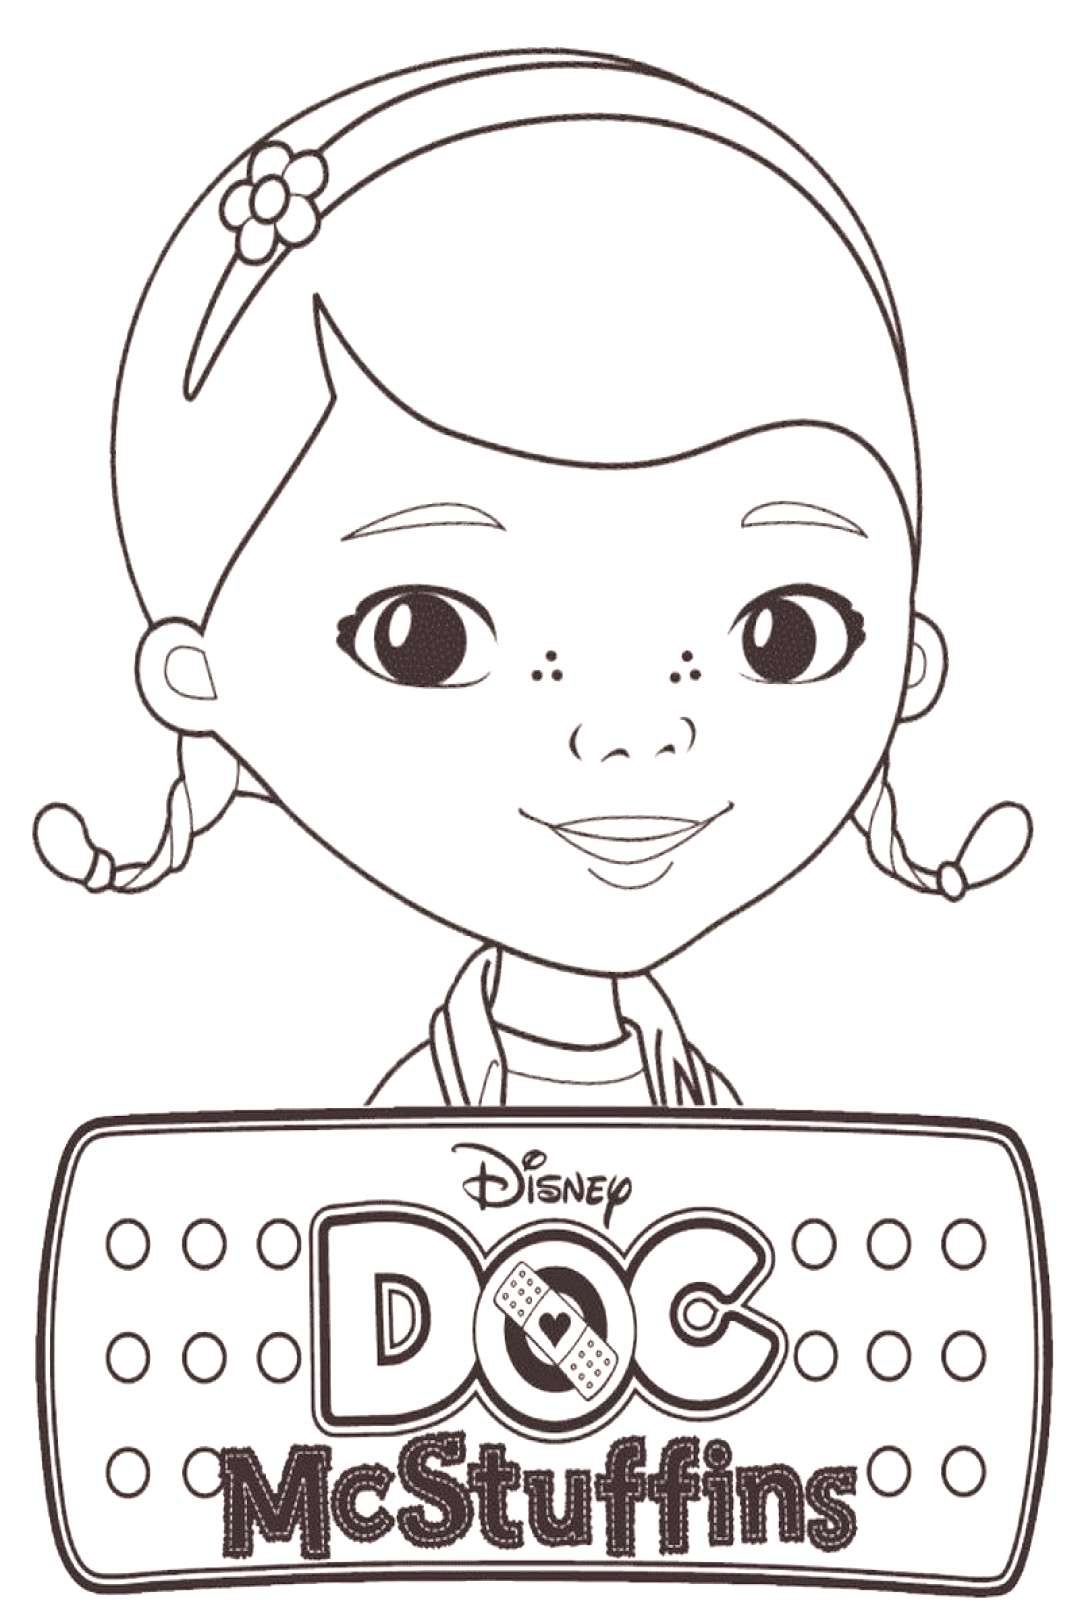 Doc Mcstuffins Coloring Pages Disney Junior Doc Mcstuffins Coloring Pages Disney Junior. Doc Mcstuf